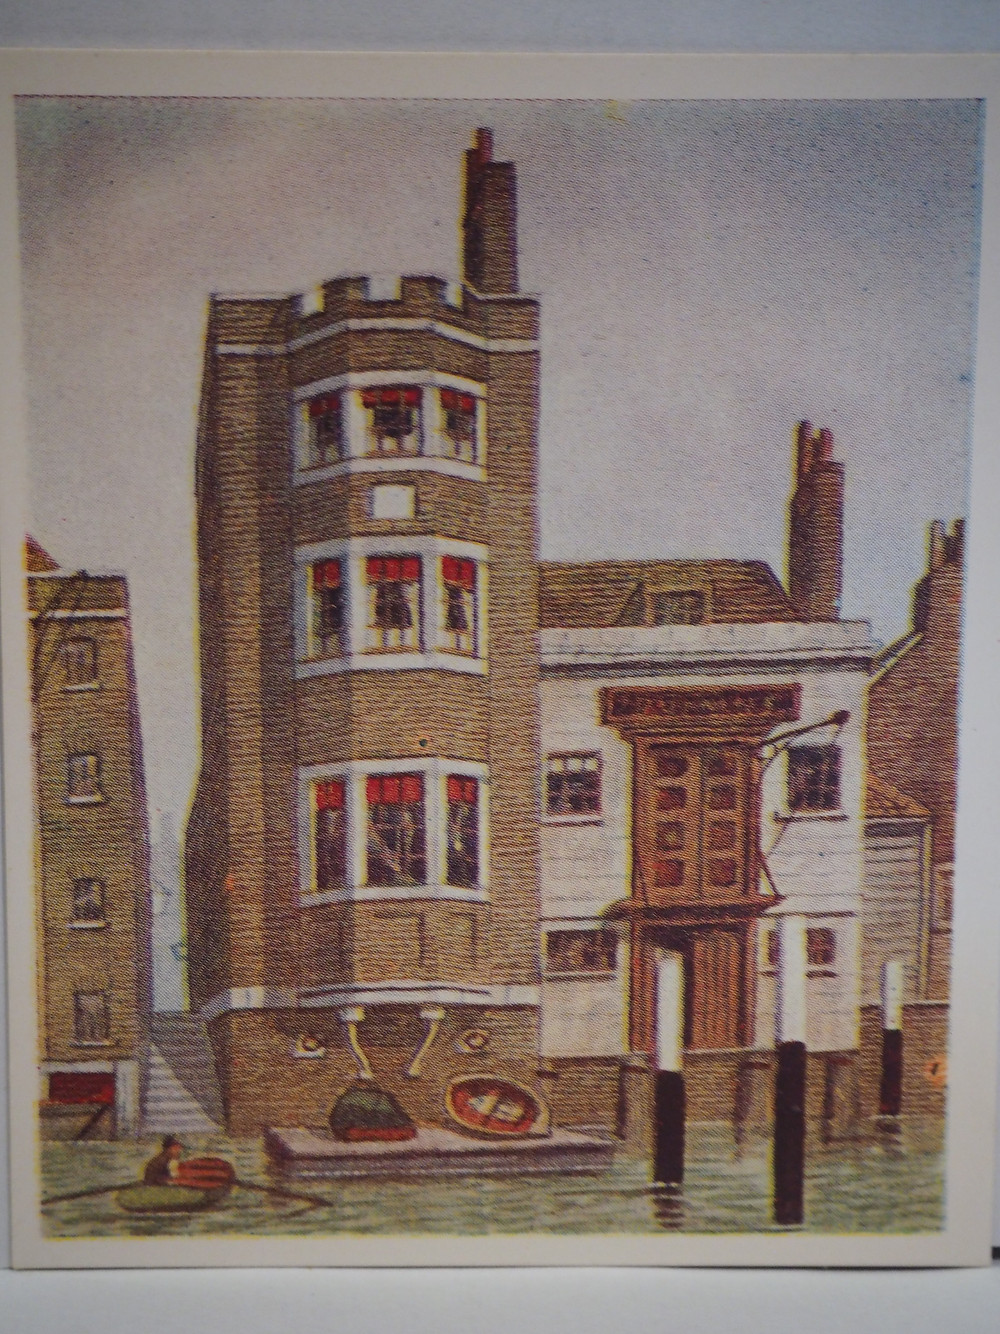 Wapping Marine Police Station, Lawson Stewart, Our Mutual Friend